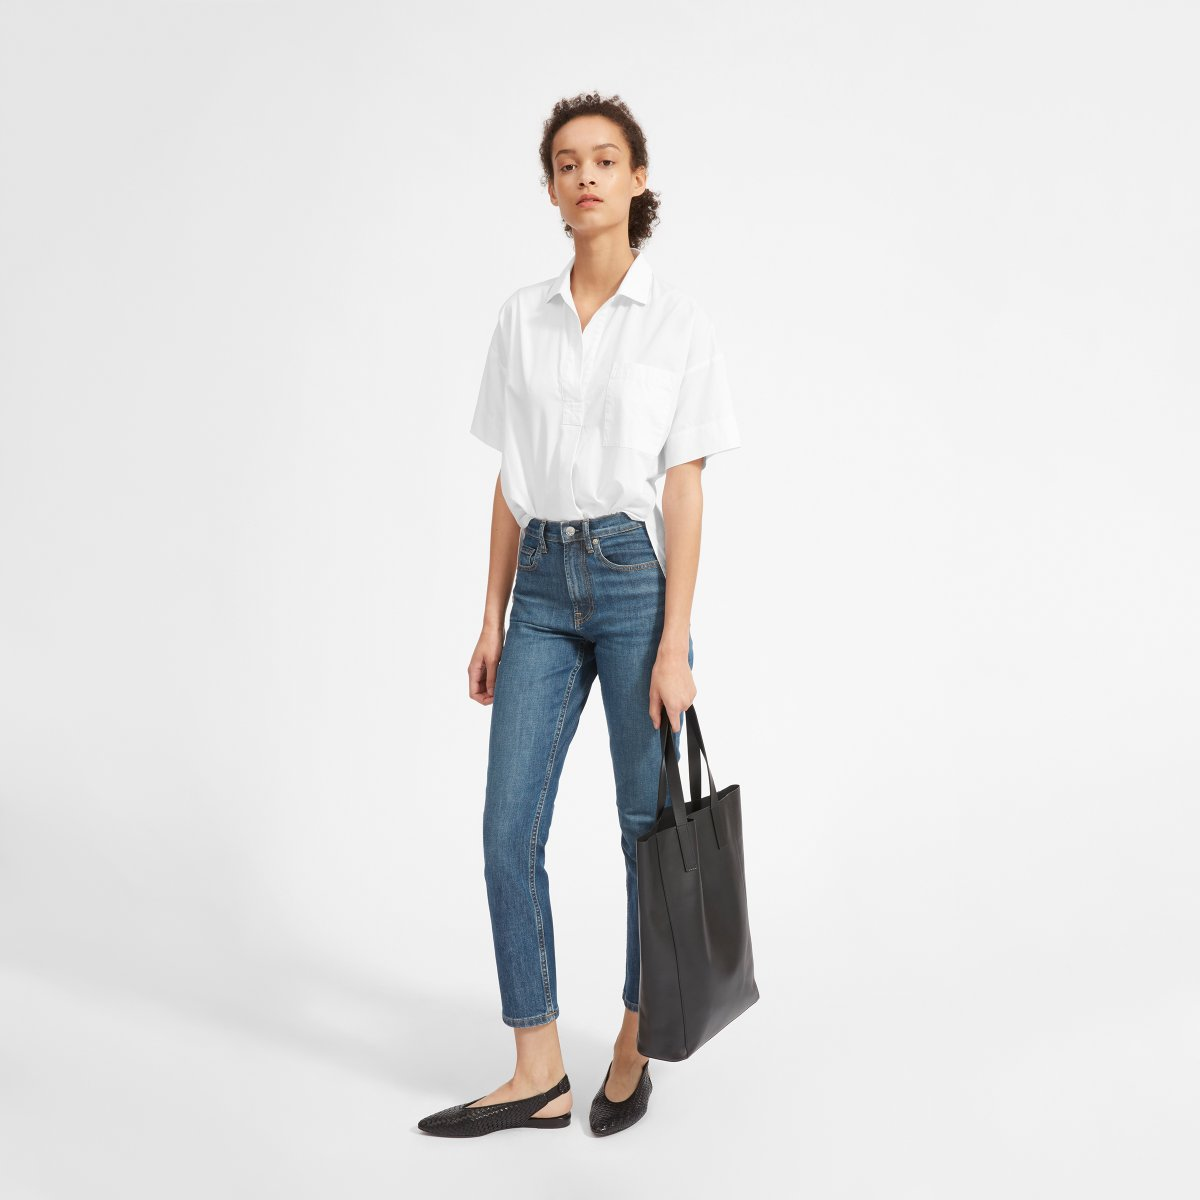 The Cotton Short Sleeve Popover Shirt by Everlane